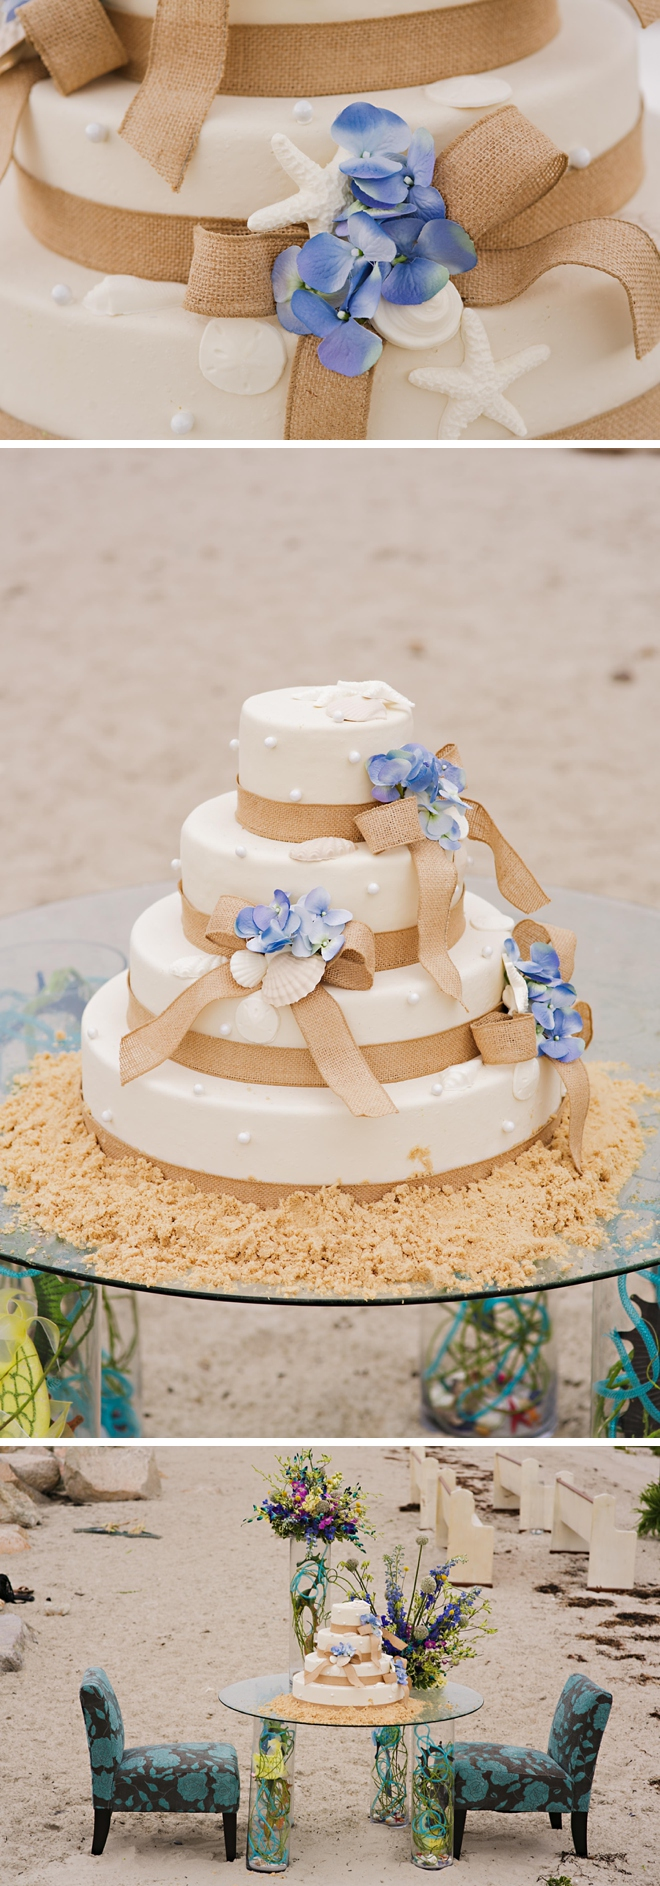 Scituate Beach Wedding Inspiration Shoot by Nicole Chan Photography on ArtfullyWed.com